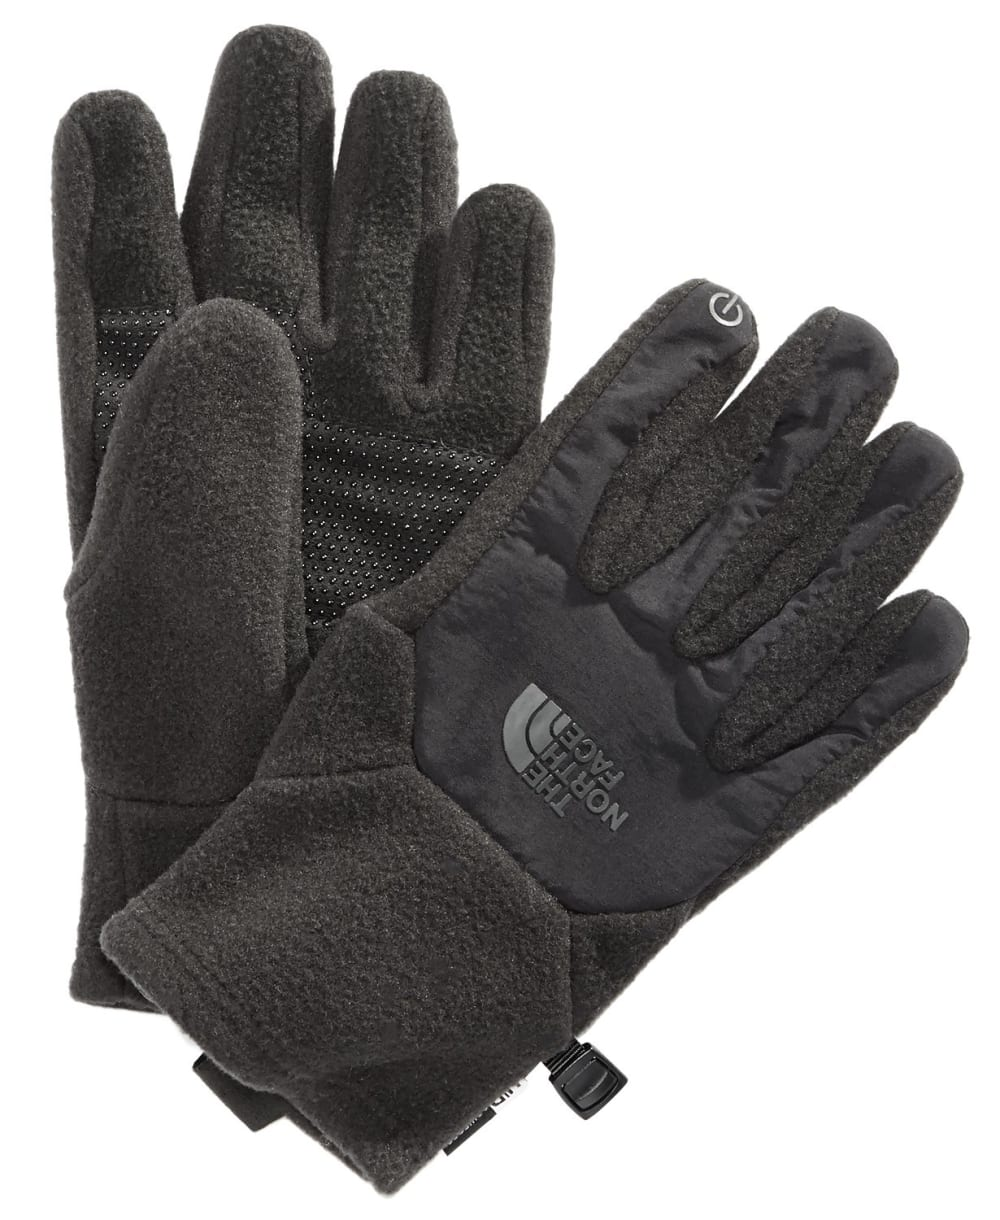 THE NORTH FACE Kids' Denali Etip™ Gloves - GVD-TNF MED GREY